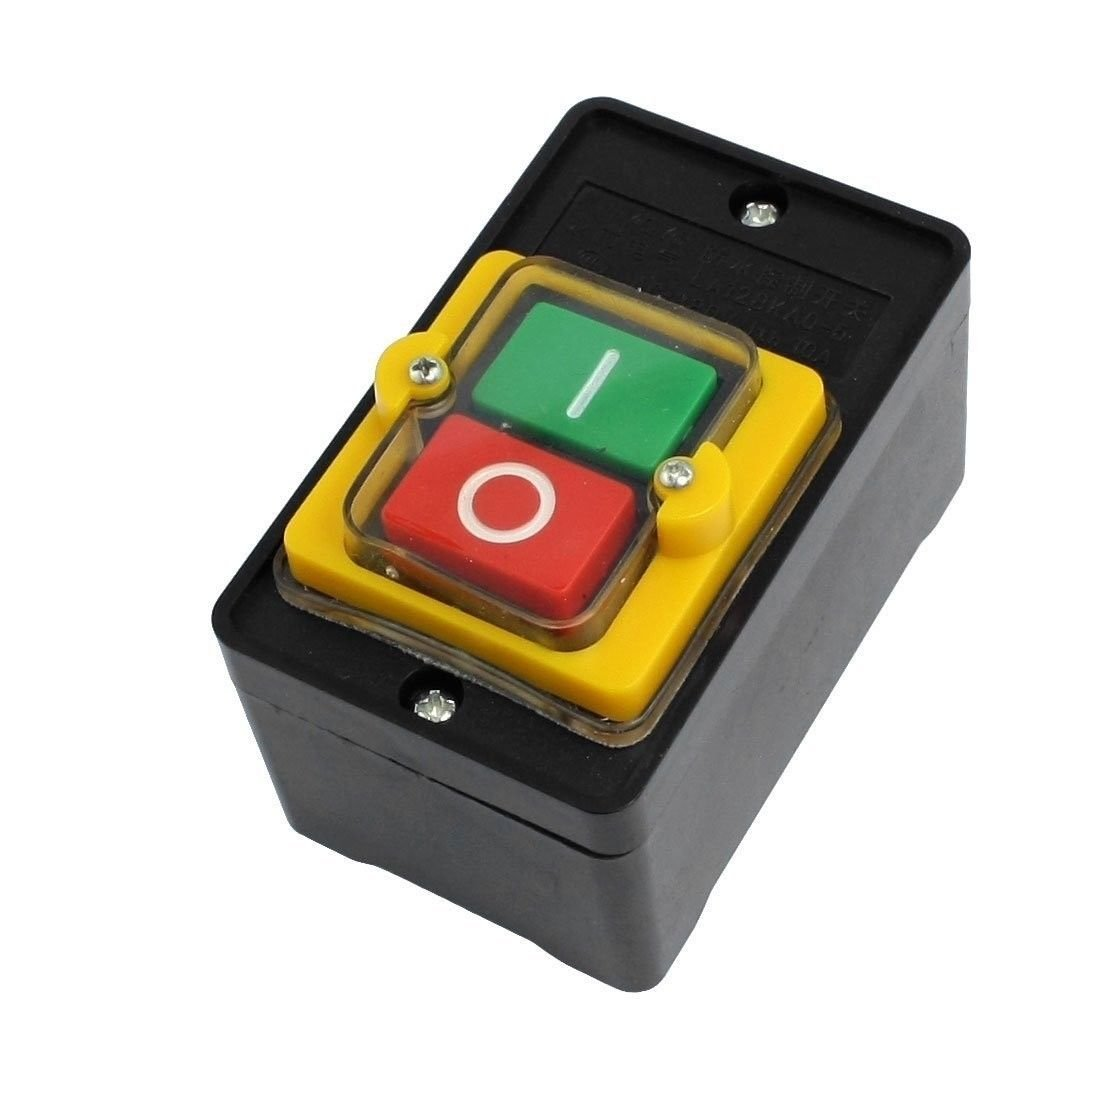 BVPOW Motor Start Stop Push Button Motor On Off Switch with Surface Waterproof Dustproof Box Mount KAO-5H 10A AC 220/380V